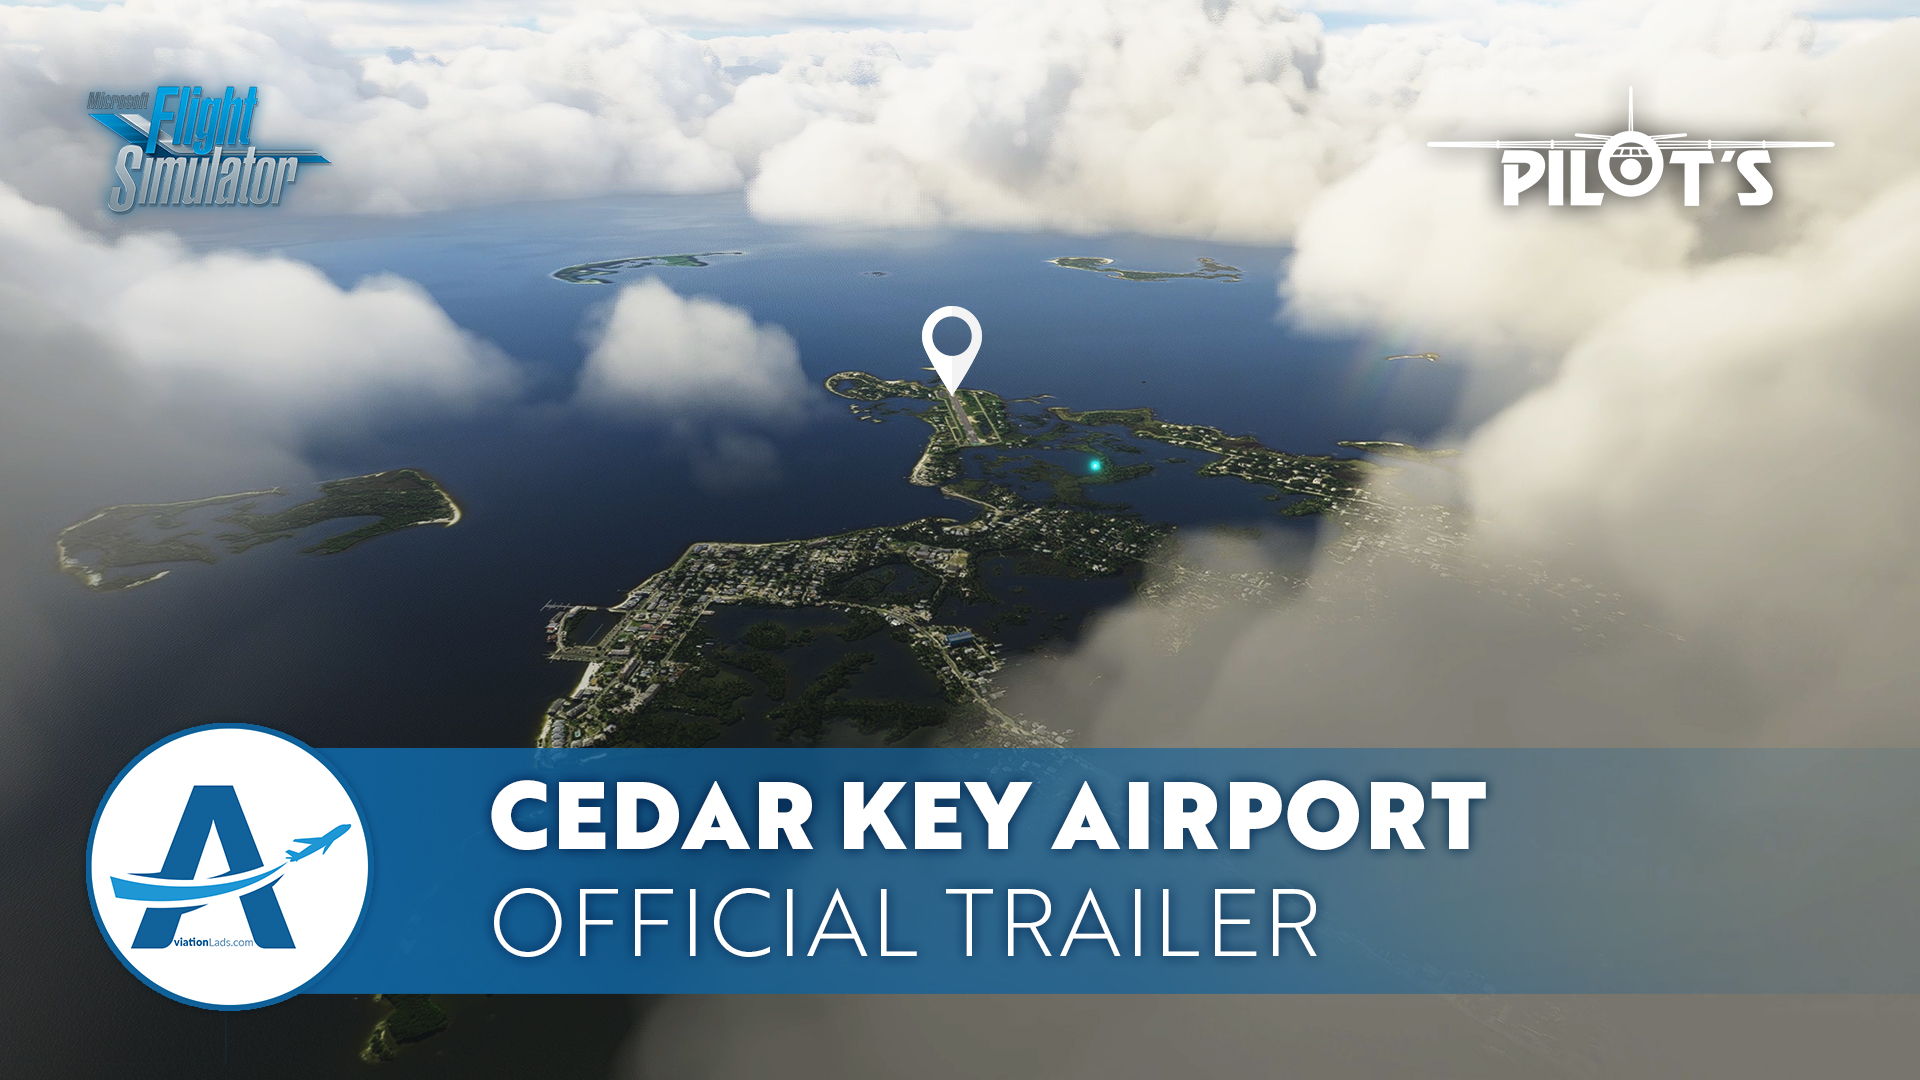 [TRAILER] PILOT'S – Cedar Key Airport